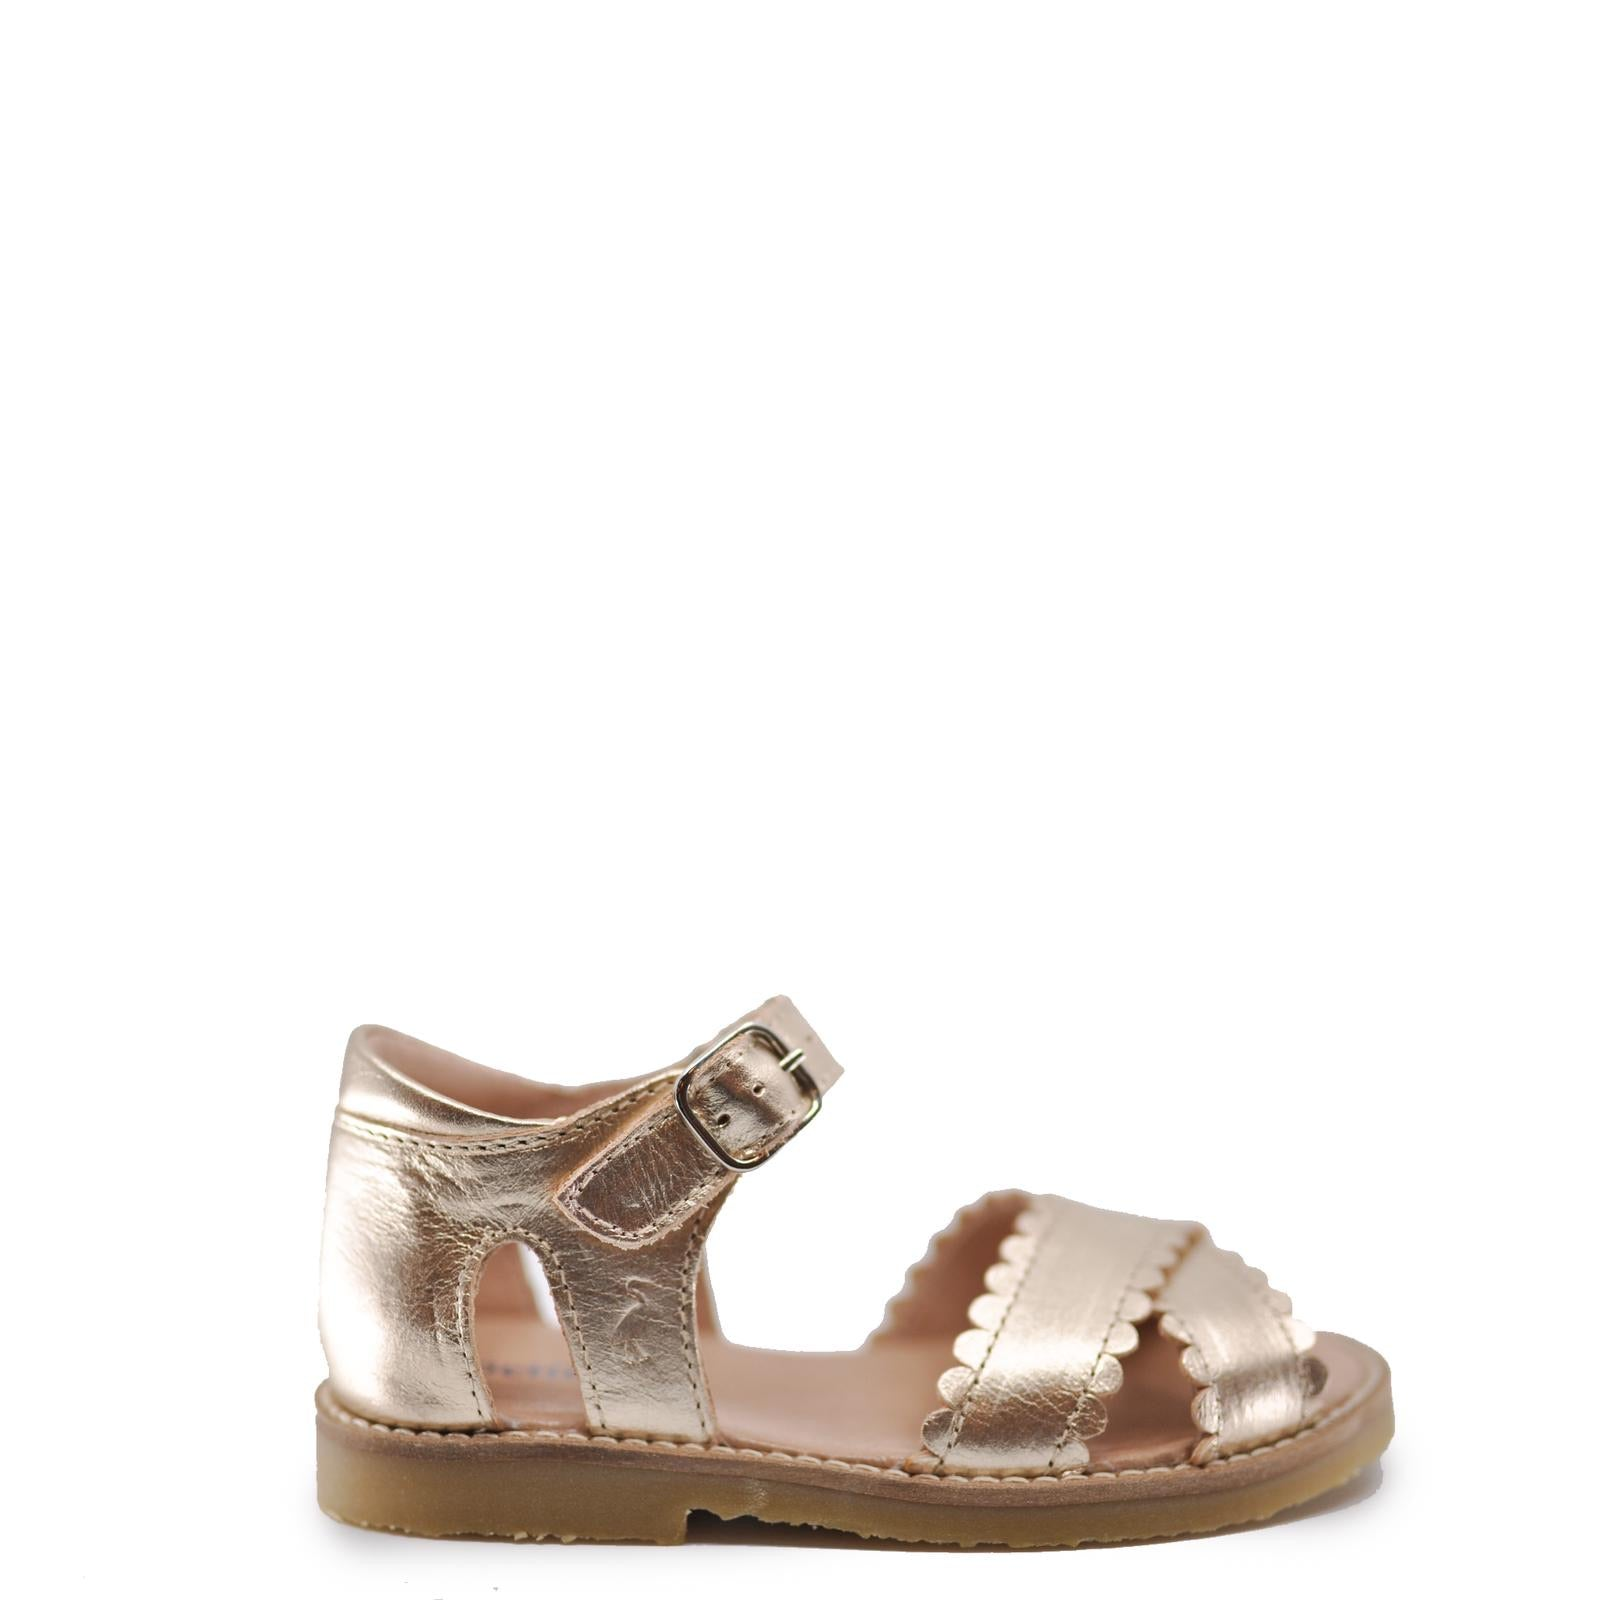 Petit Nord Gold Scallop Criss Cross Sandal-Tassel Children Shoes